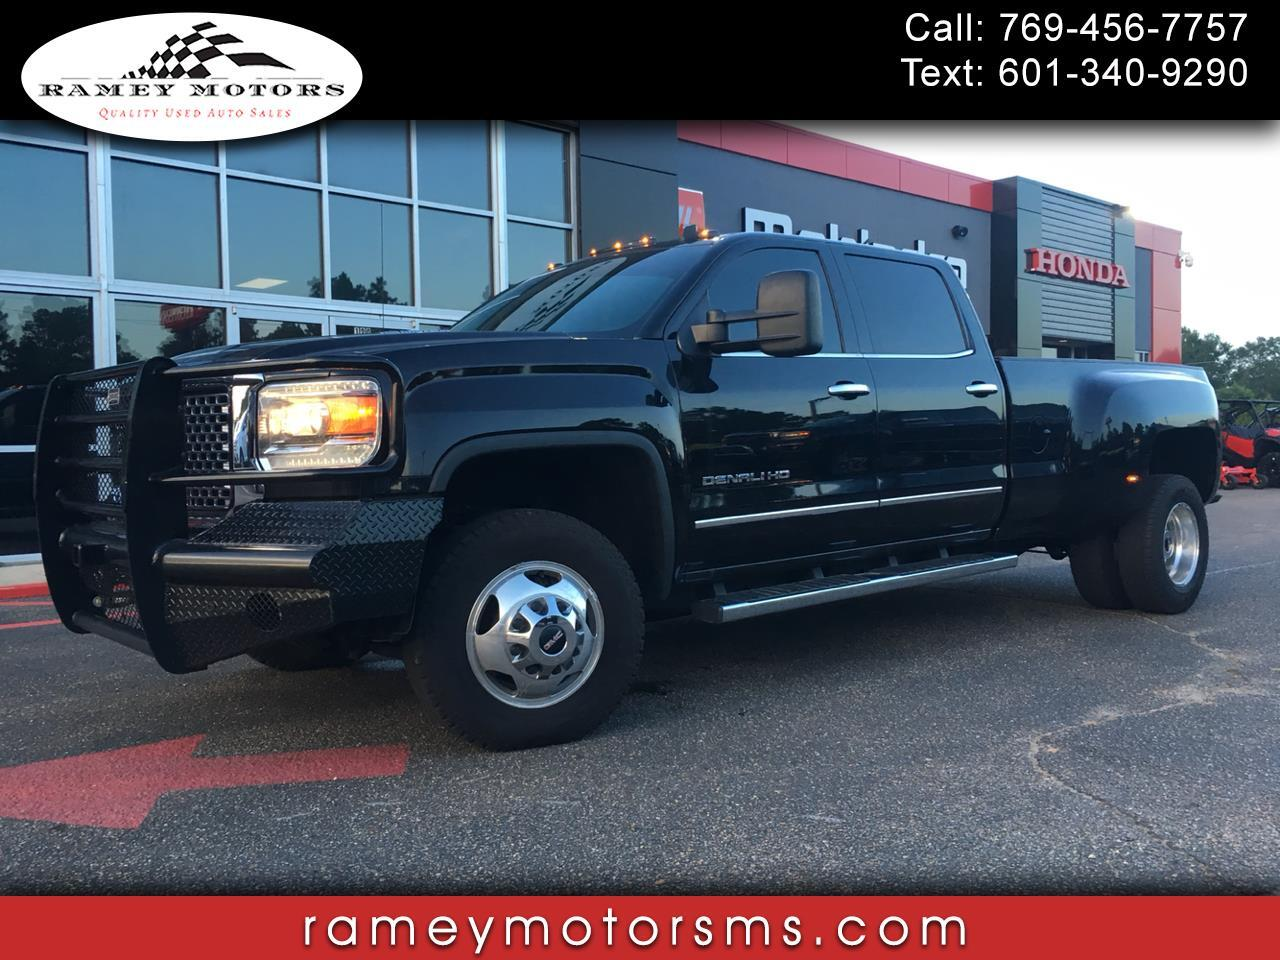 2015 GMC Sierra 3500HD available WiFi 4WD CREWCAB DENALI